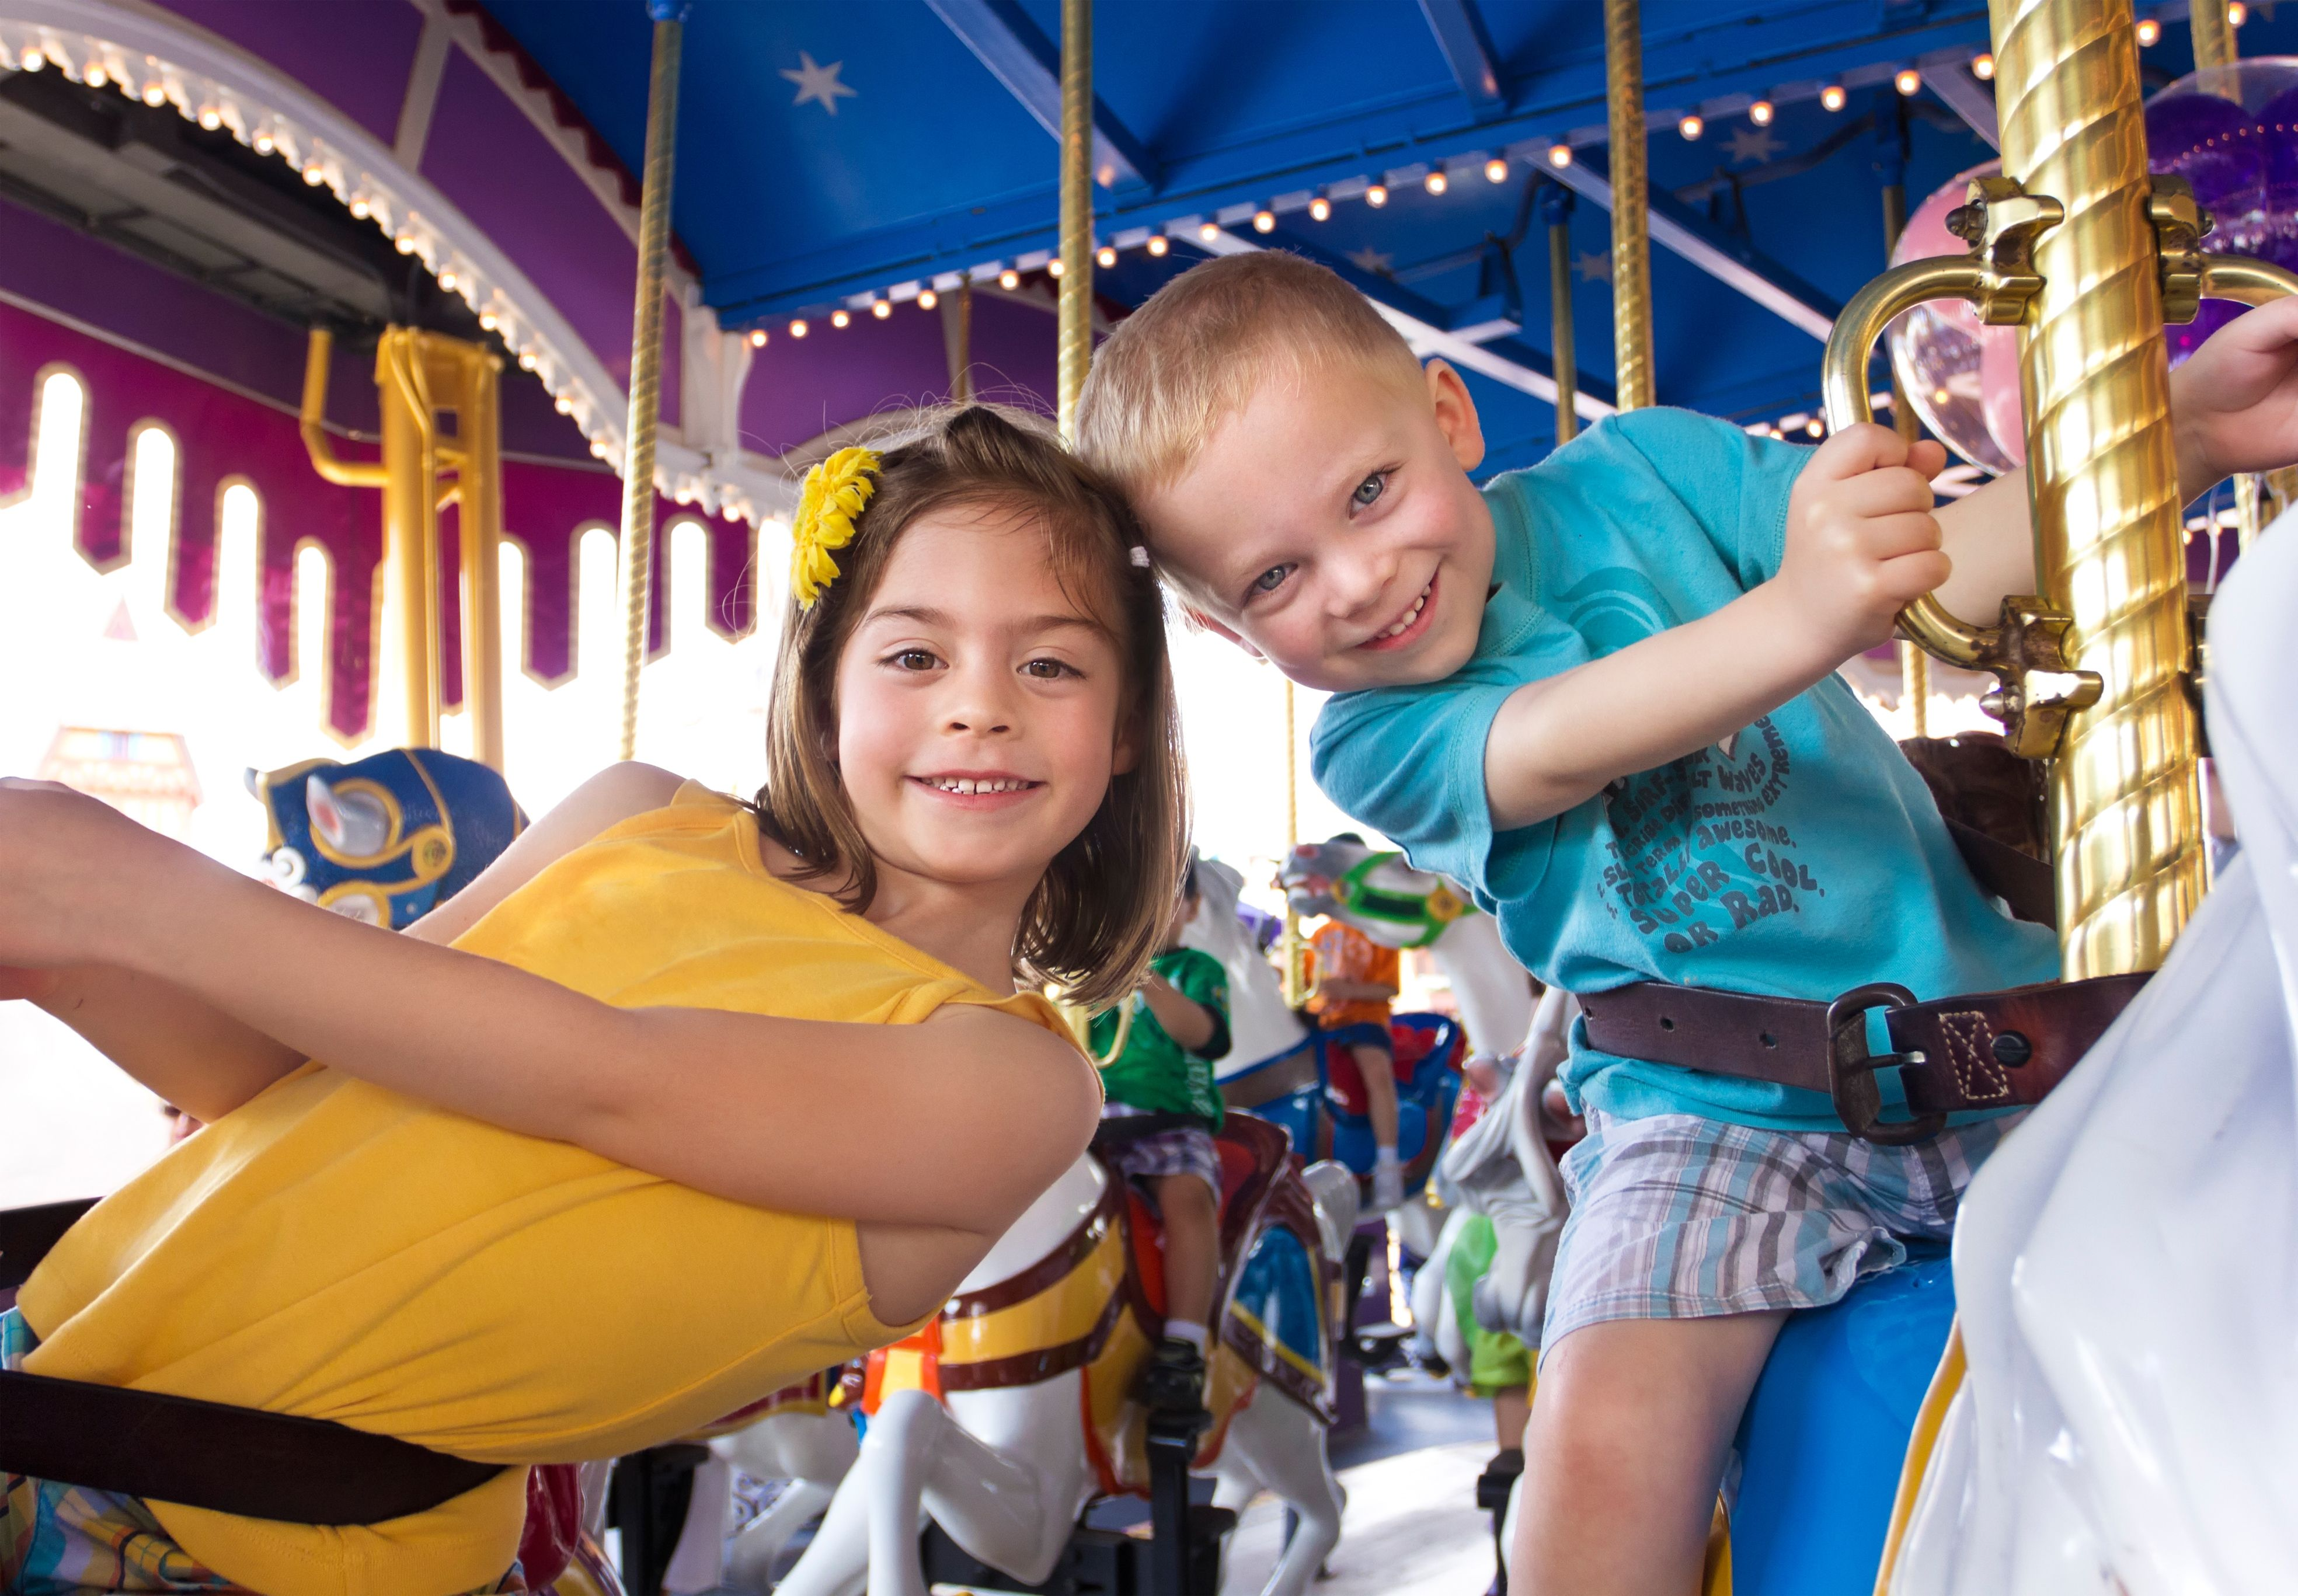 We want to send you & your #family  on a magical #vacation in Orlando! #DisneyWorld